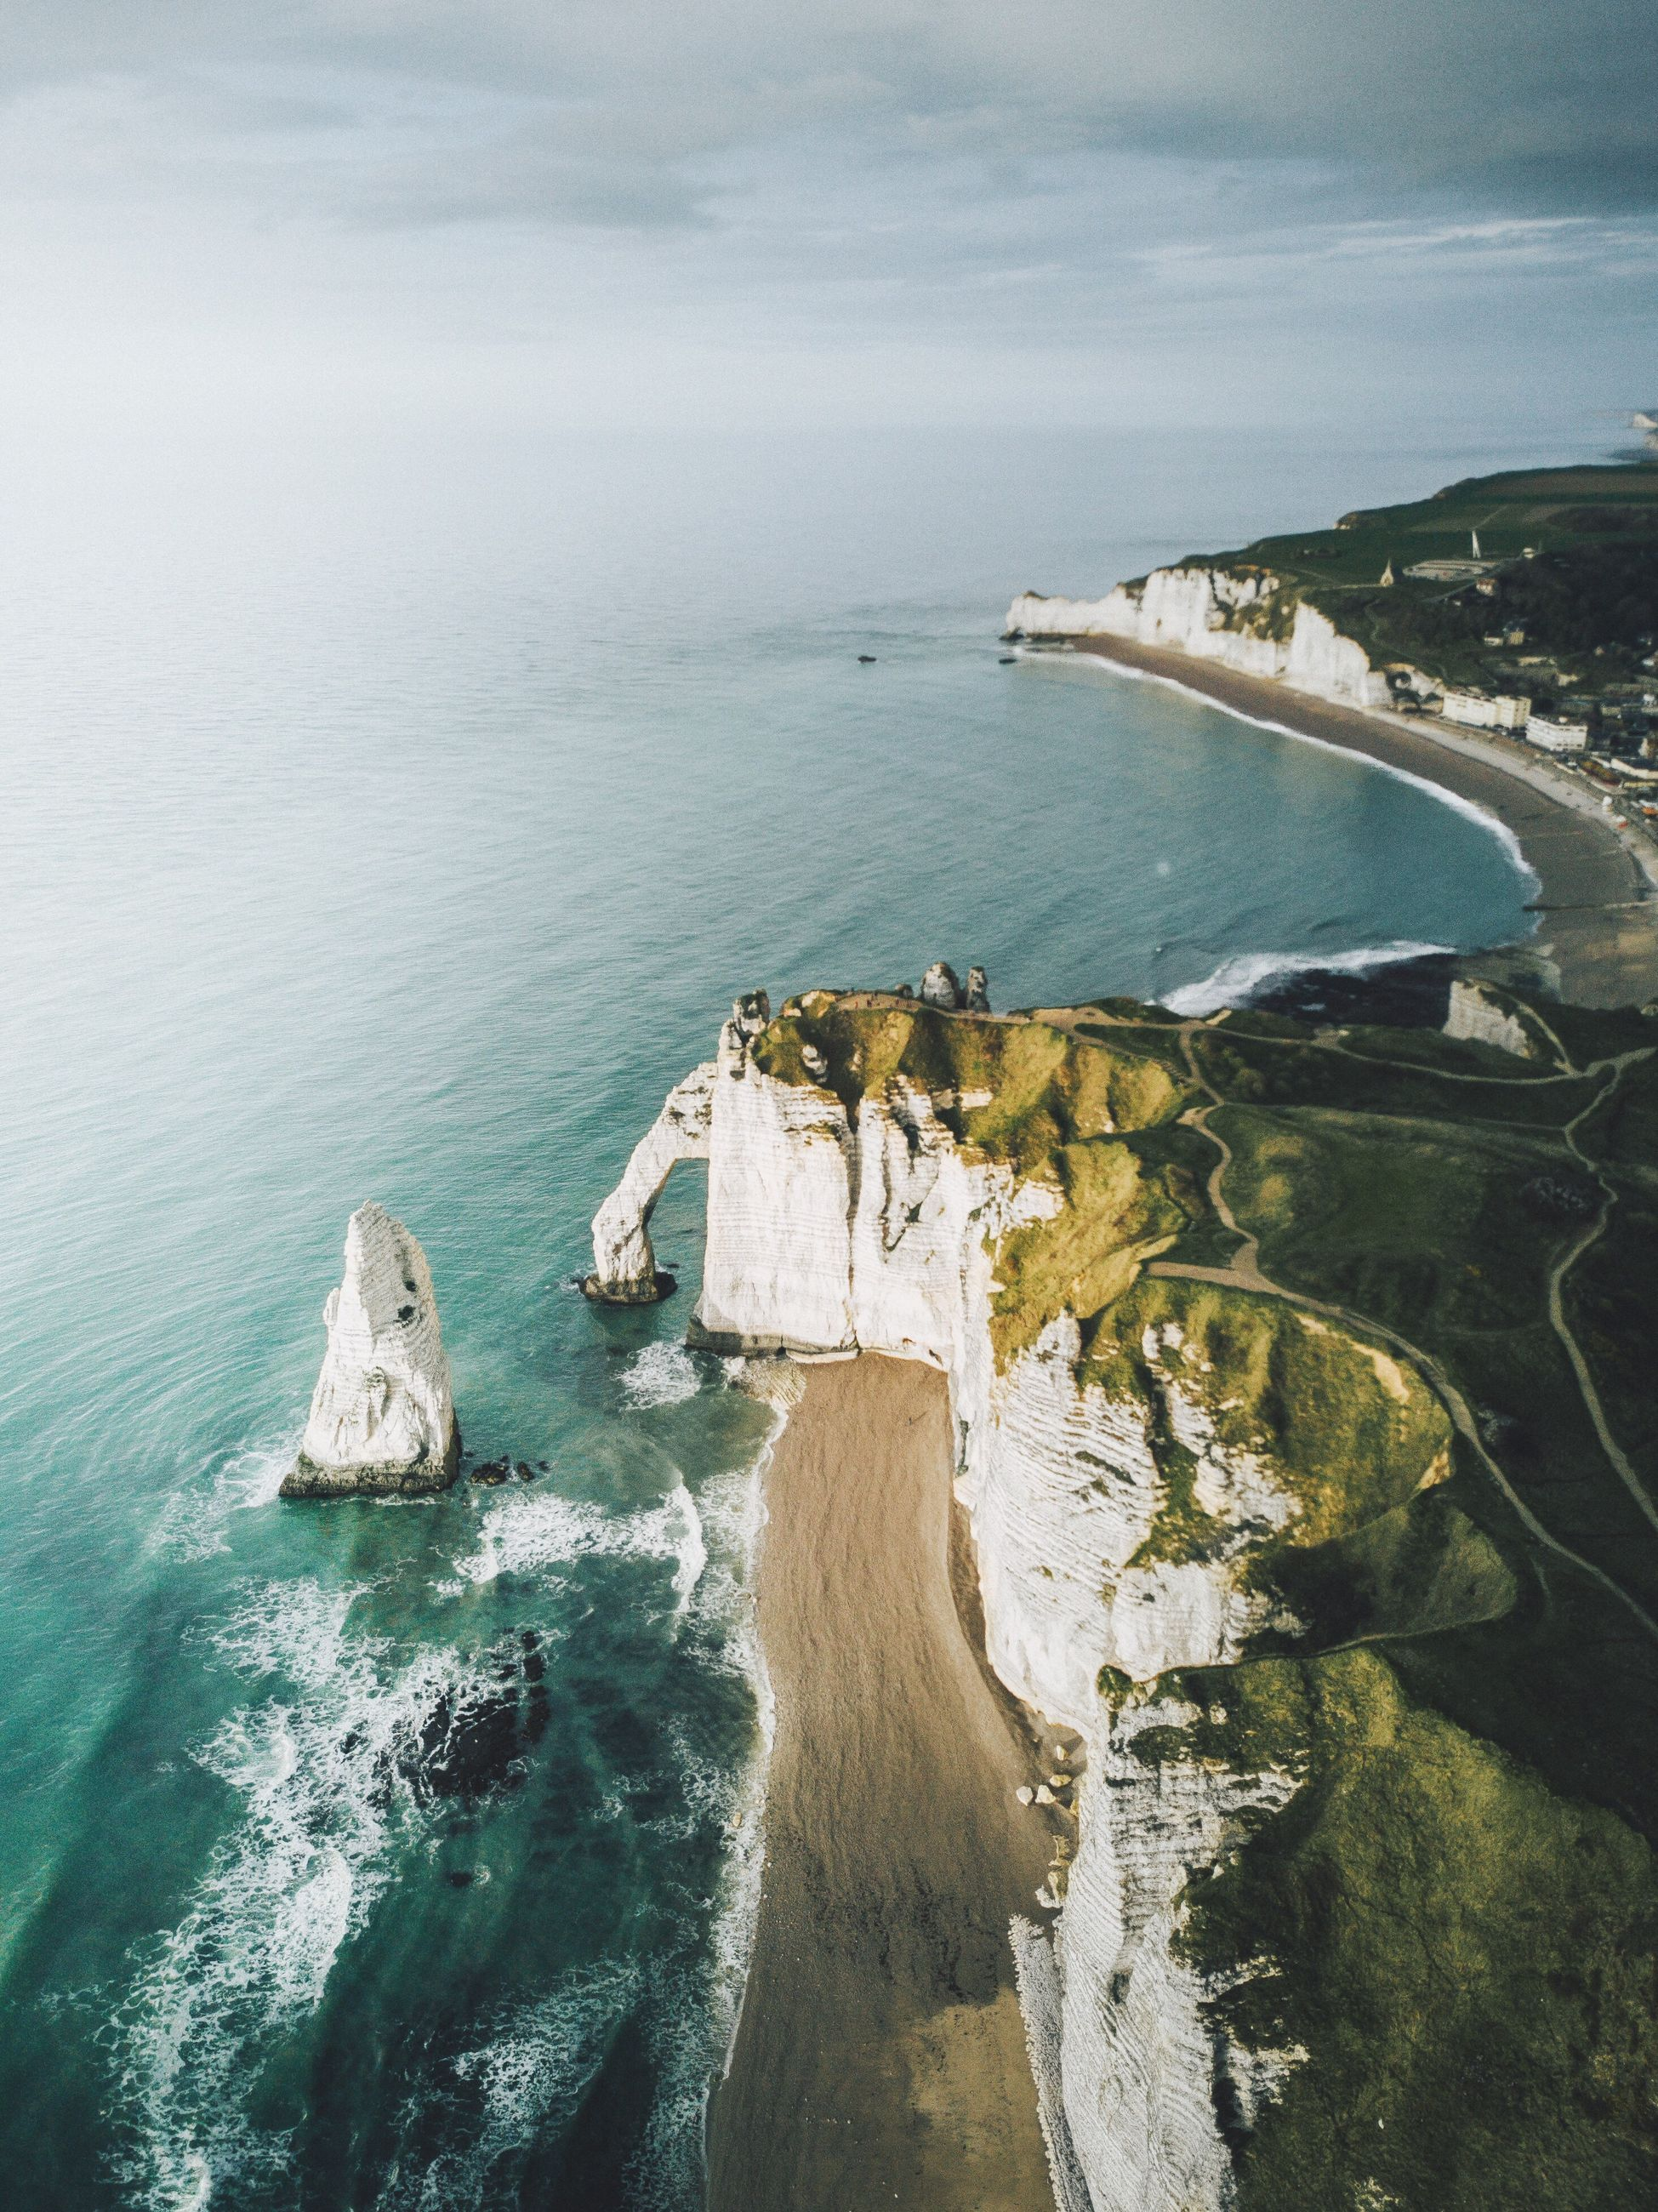 sea, water, nature, scenics, horizon over water, beauty in nature, high angle view, rock - object, sky, tranquility, tranquil scene, no people, cliff, day, architecture, built structure, outdoors